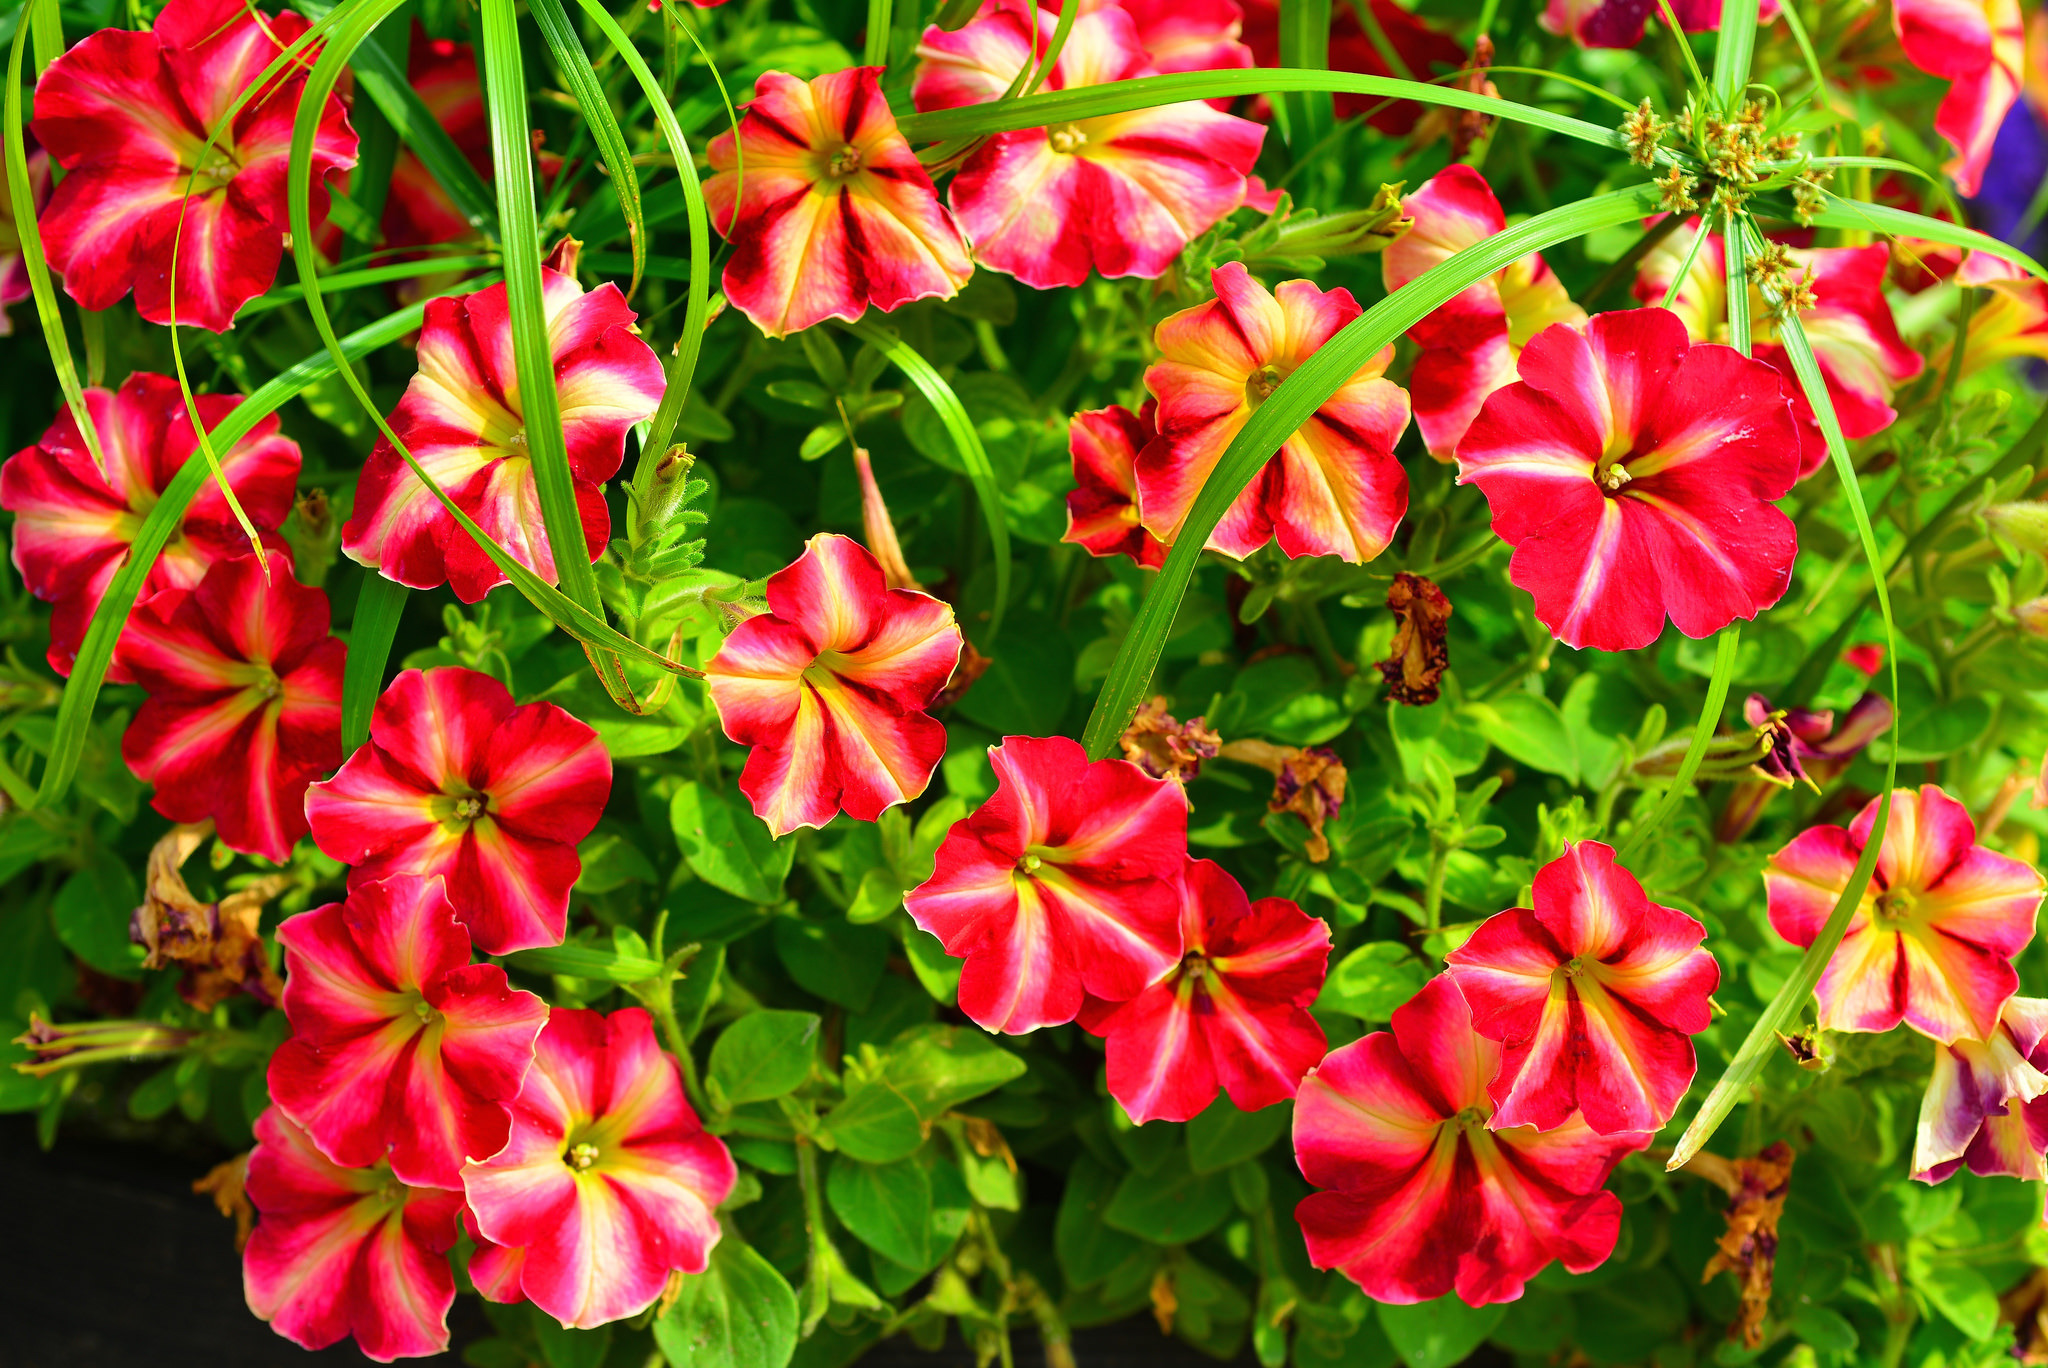 Fantastic Petunia Flowers Image Free Download